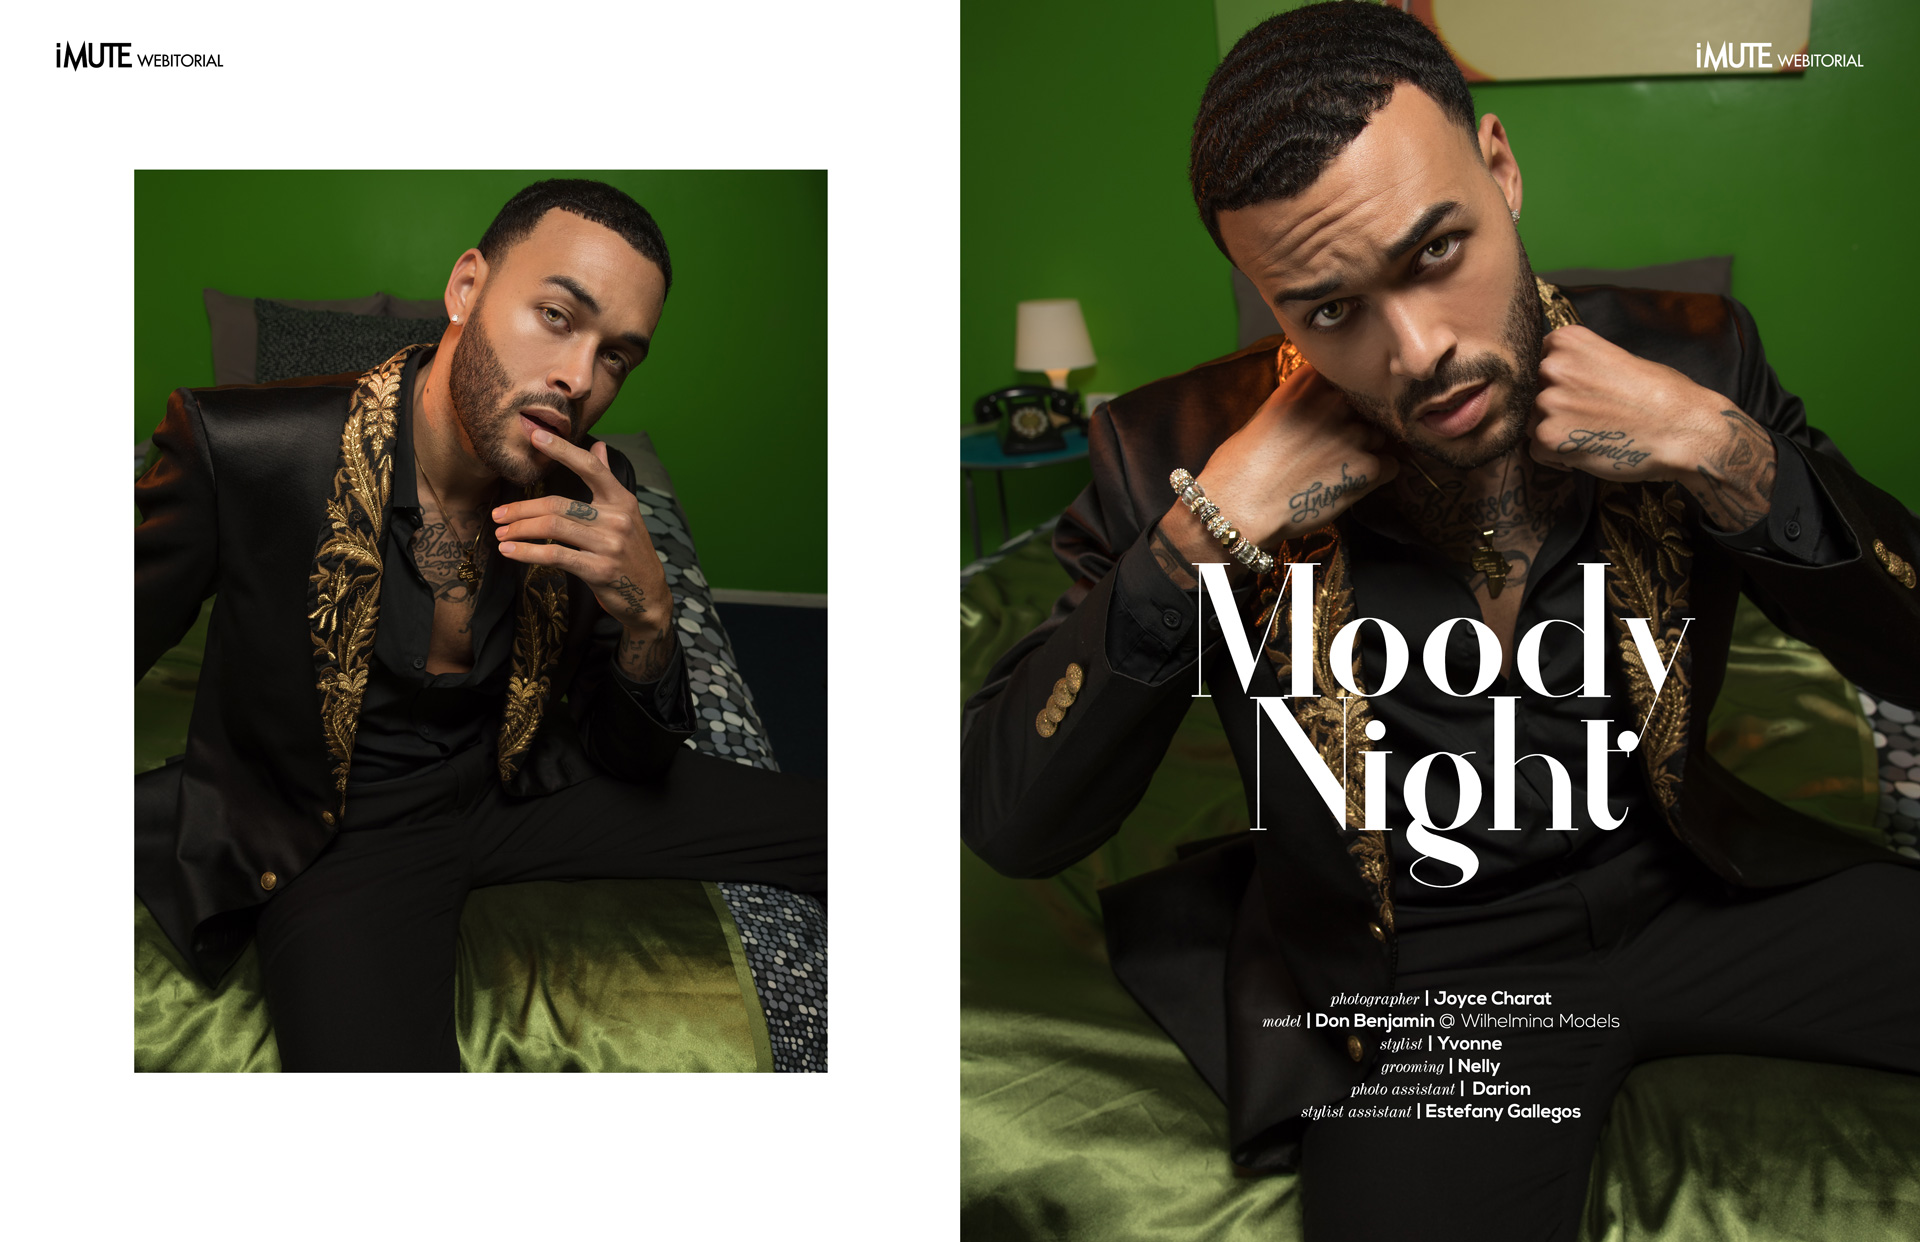 Moody Night webitorial for iMute Magazine Photographer | Joyce Charat Model | Don Benjamin @ Wilhelmina Models Stylist | Yvonne Grooming | Nelly Photo Assistant | Darion Stylist Assistant | Estefany Gallegos